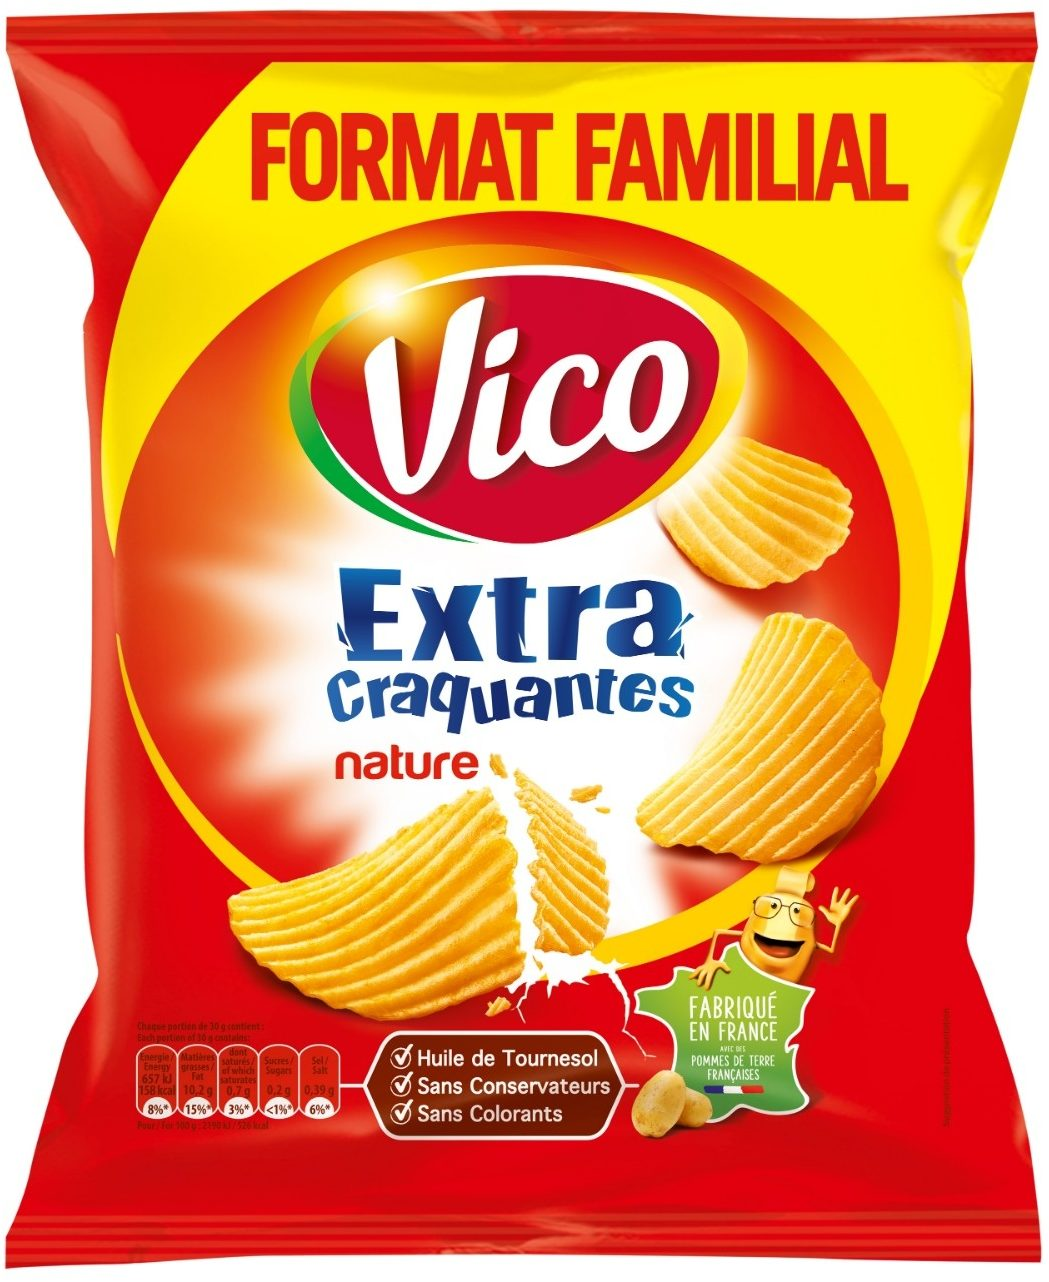 Vico Extra Craquantes 270g - Product